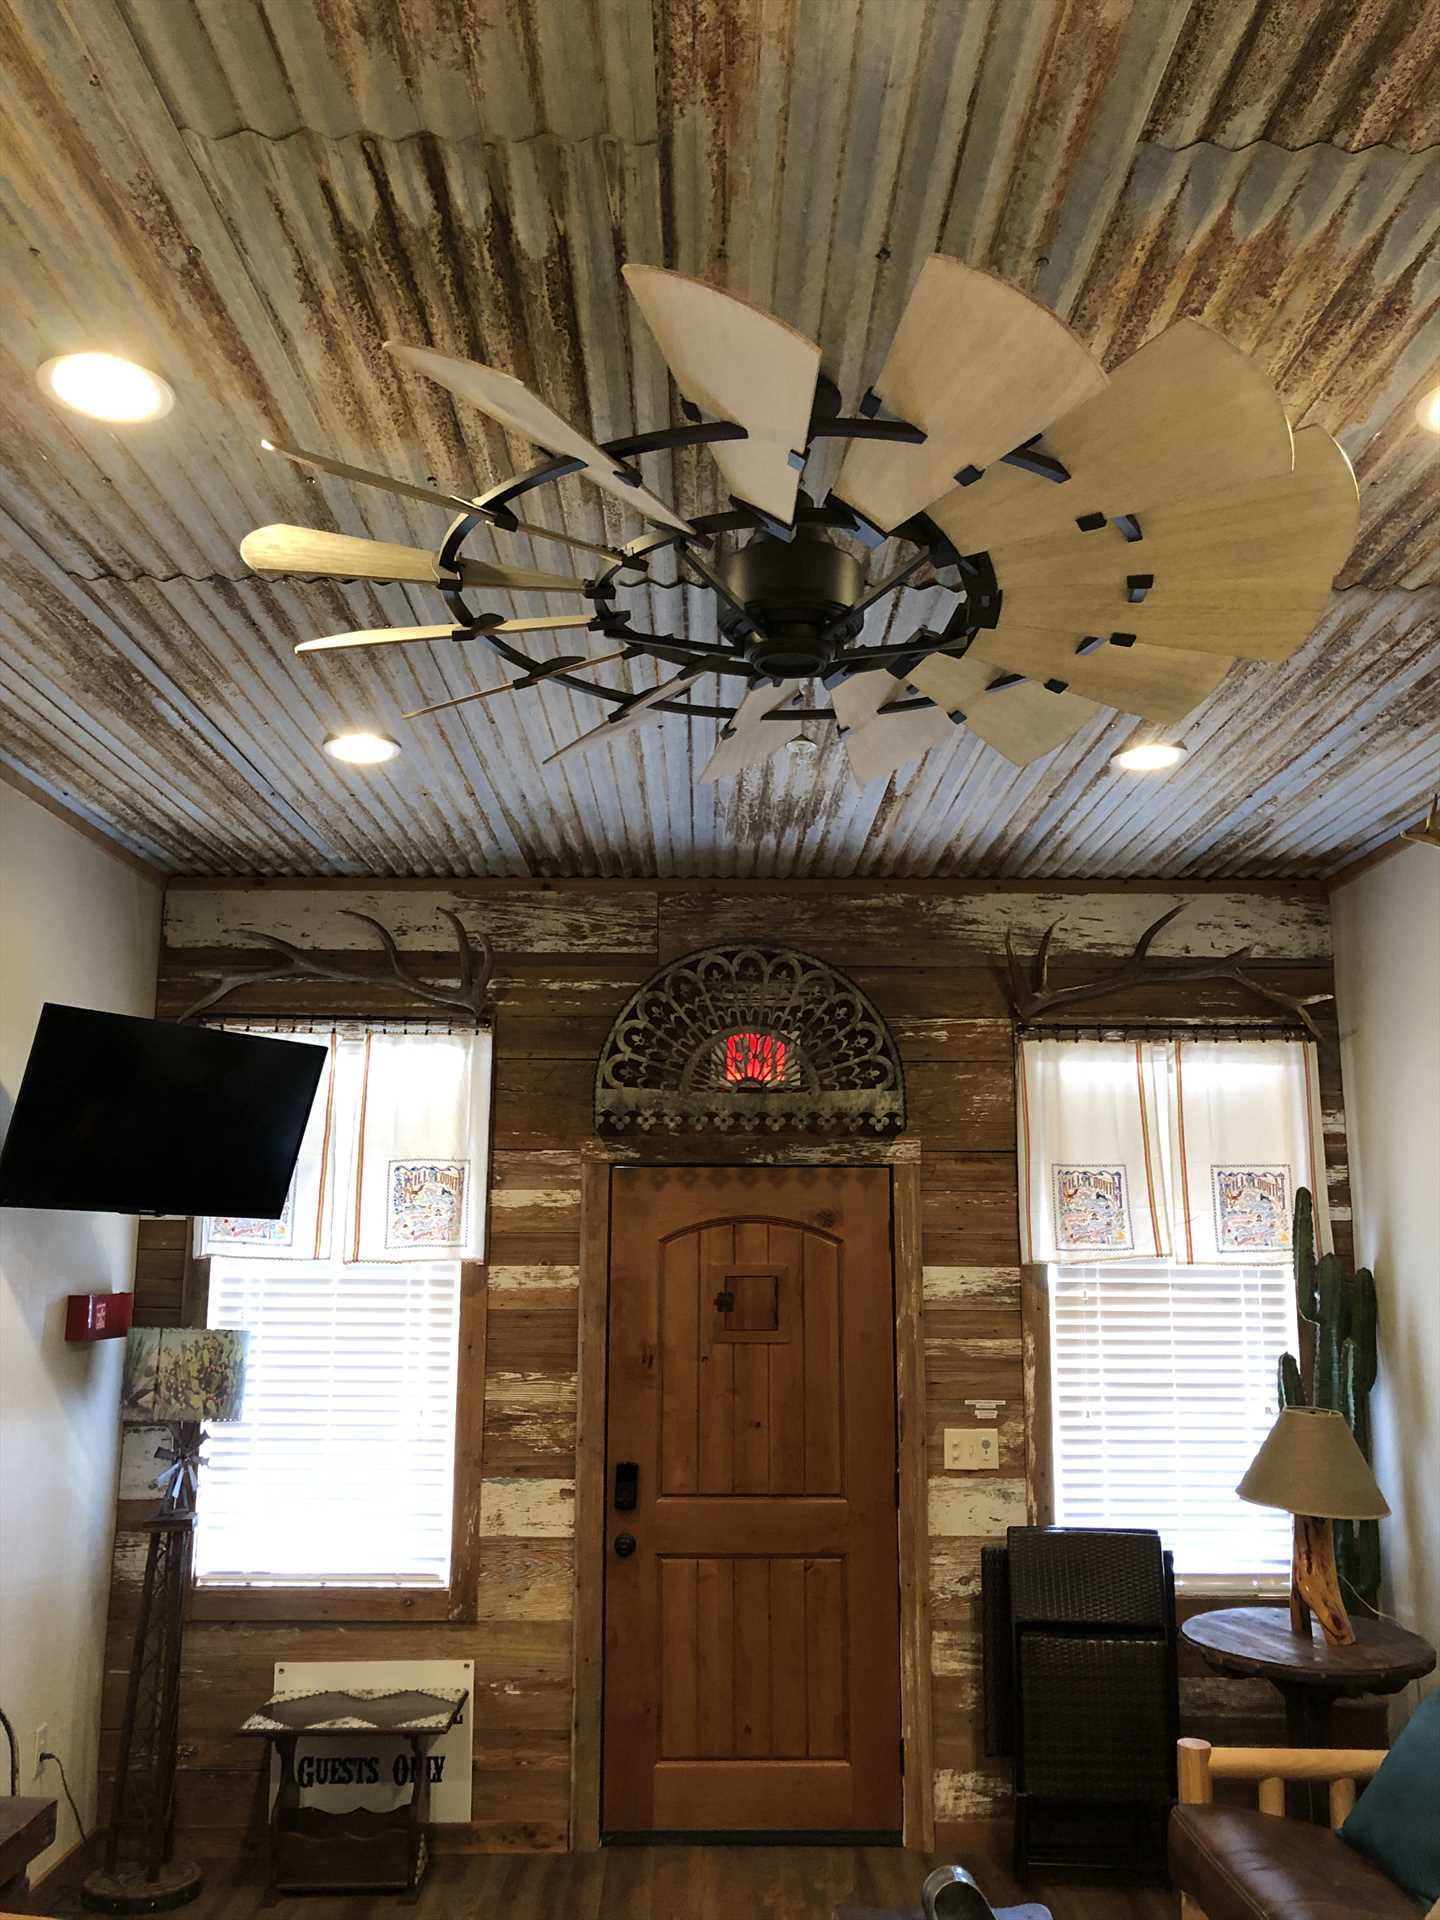 A ceiling fan reminiscent of a Texas prairie windmill keeps air moving in the cabin, it's a perfect companion for the central air and heat here!